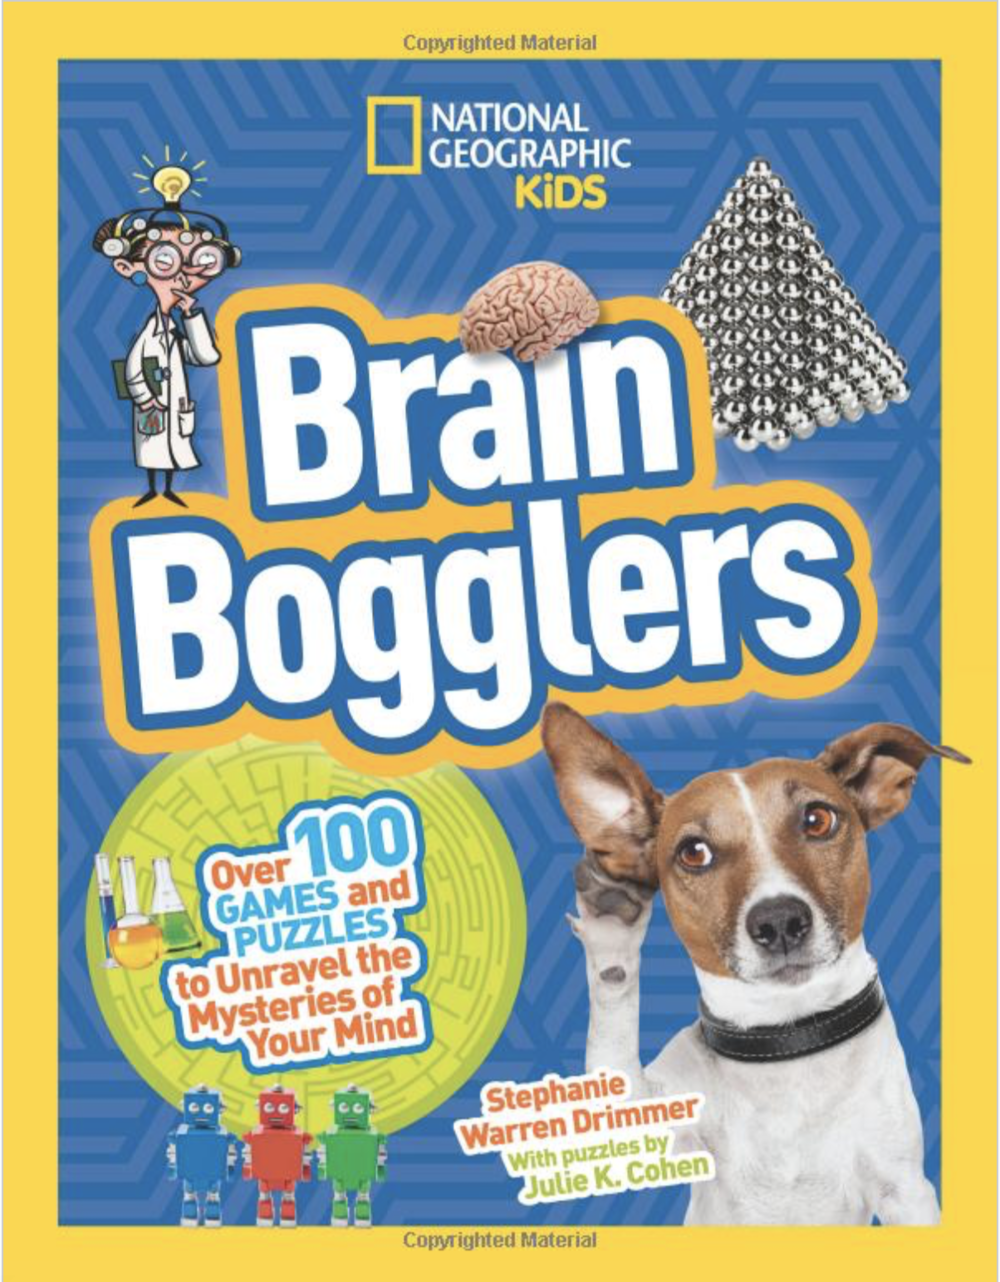 Get ready to challenge yourself in this super-fun write-in activity book chock-full of amazing puzzles, games, and brain facts all about the mysteries of your own mind! Follow zany narrator and superbraniac Ima Genius and her talking dog Atom to get snappy explanations of why and how your brain deals with memory, sleep, vision, fear, mind control, and so much more!